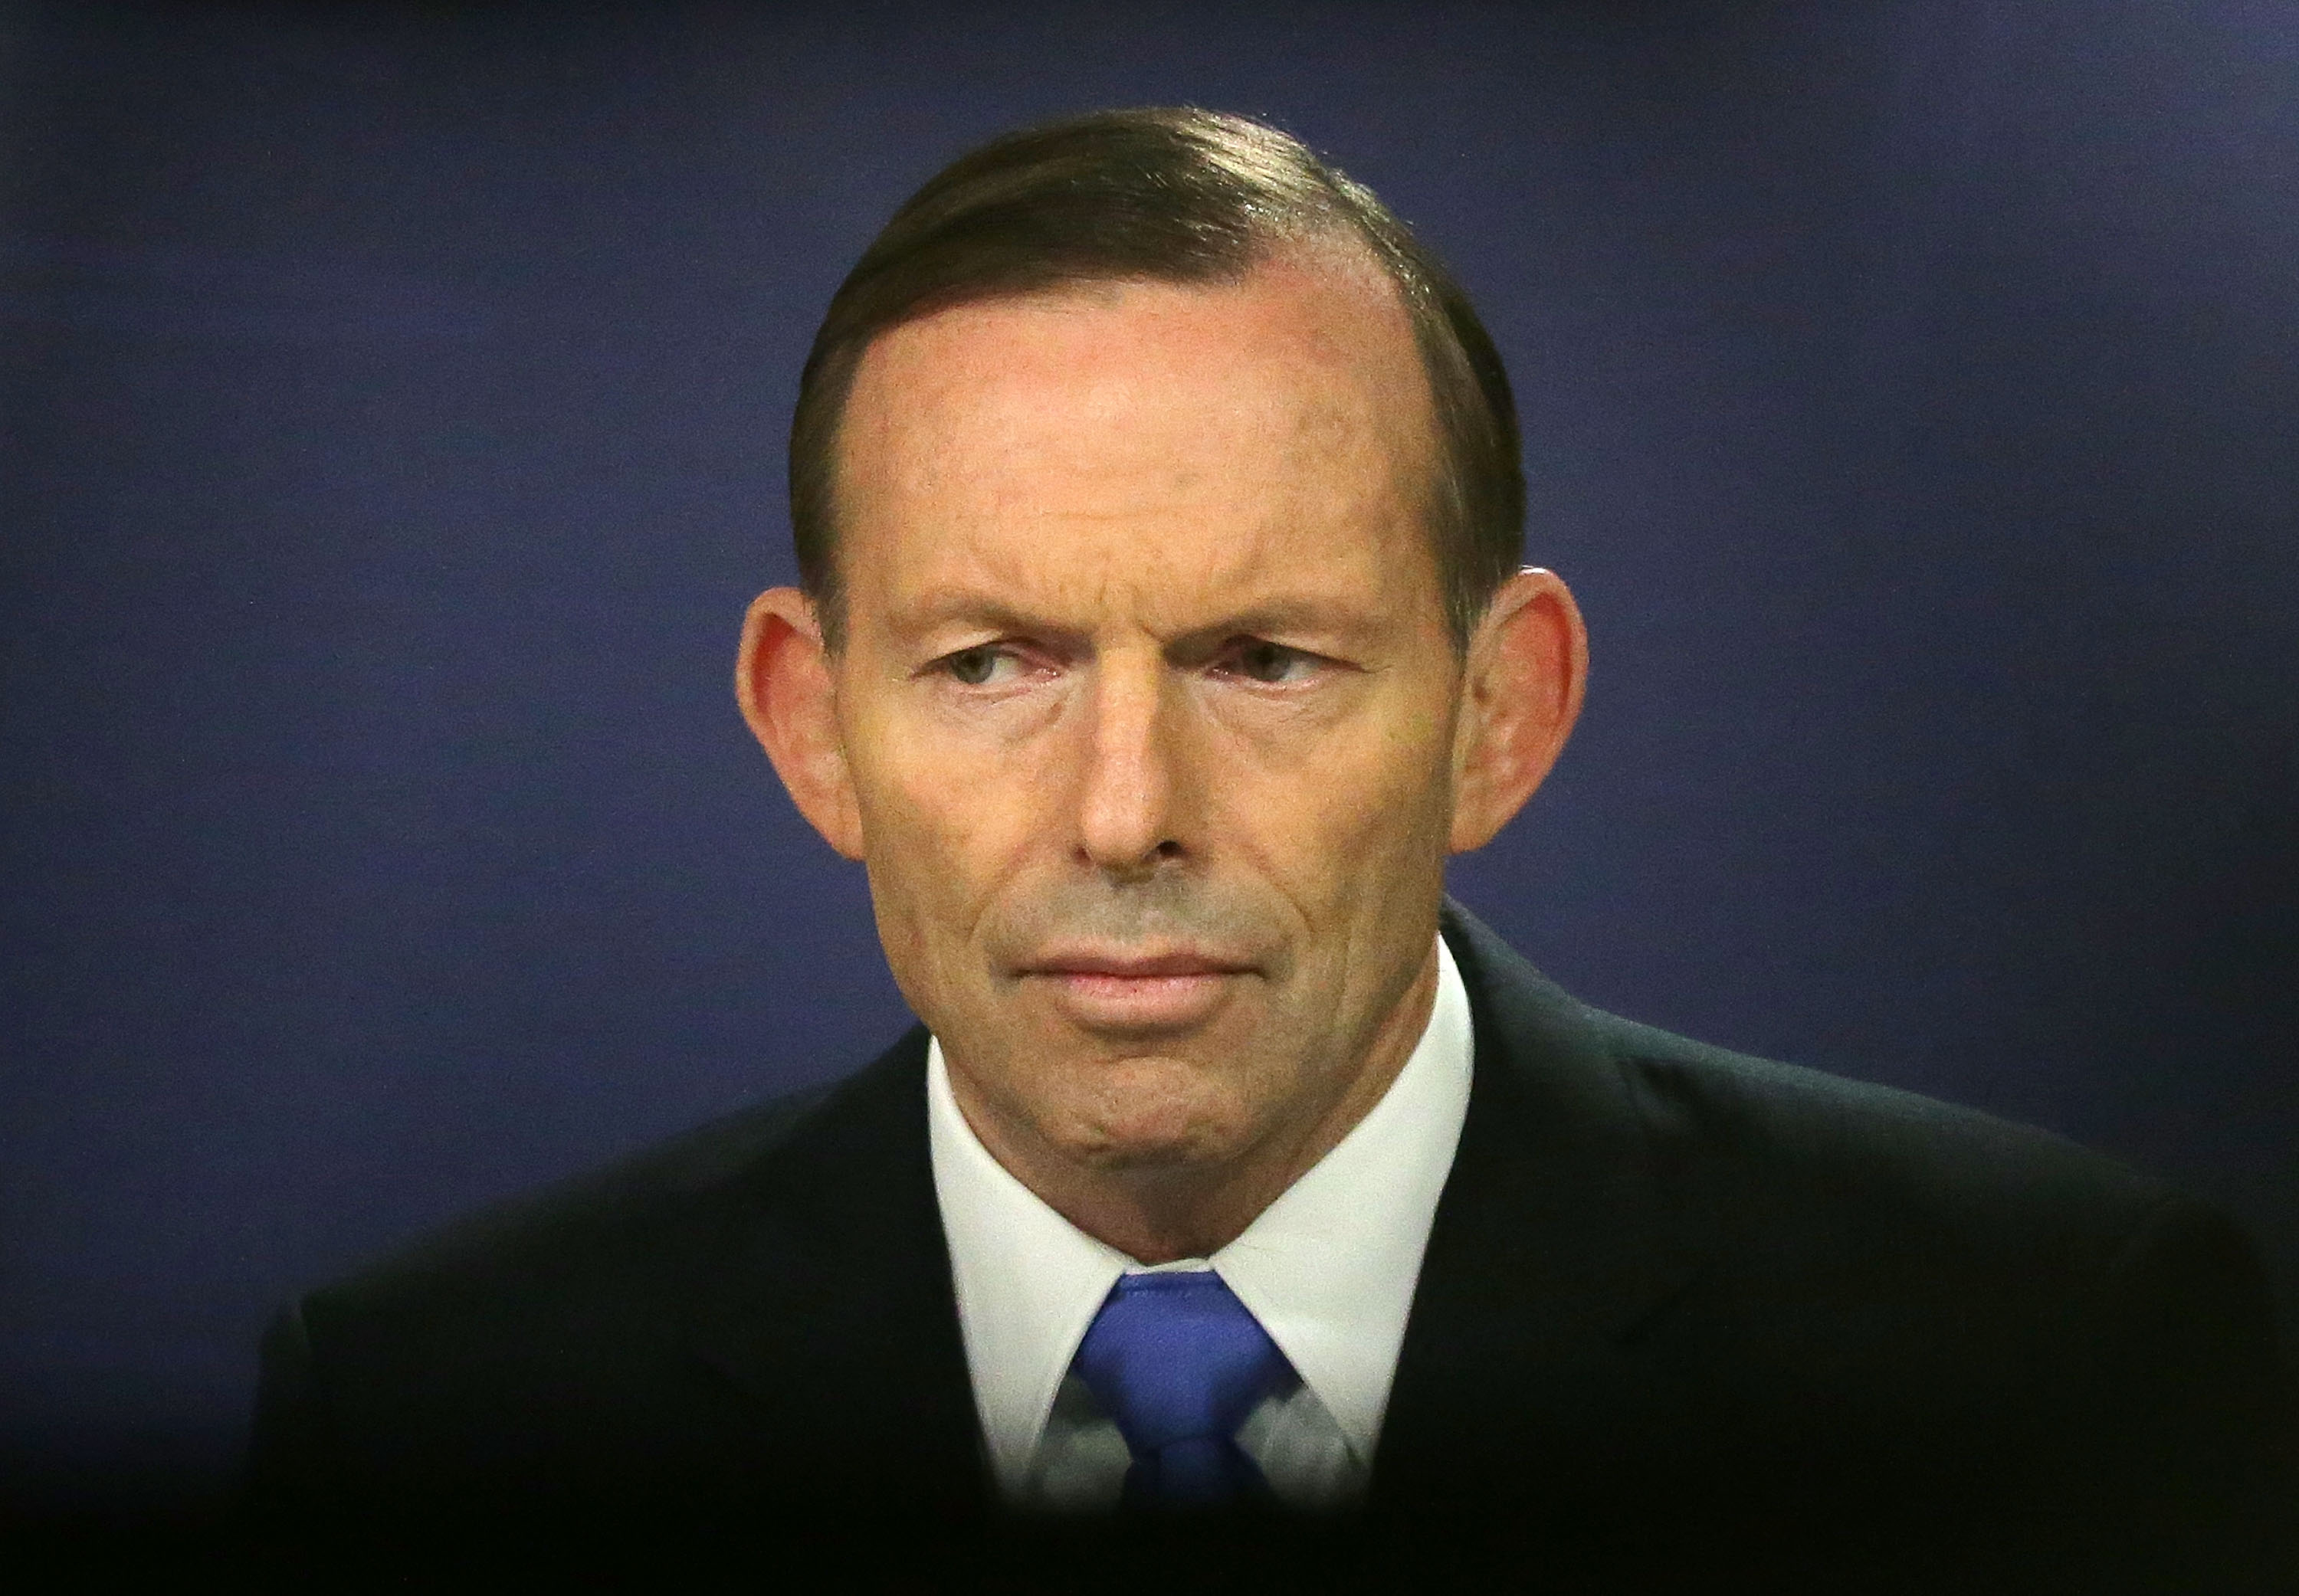 Prime Minister Tony Abbott speaks to the media at Sydney Commonwealth Parliamentary Offices on September 19, 2014 in Sydney, Australia.